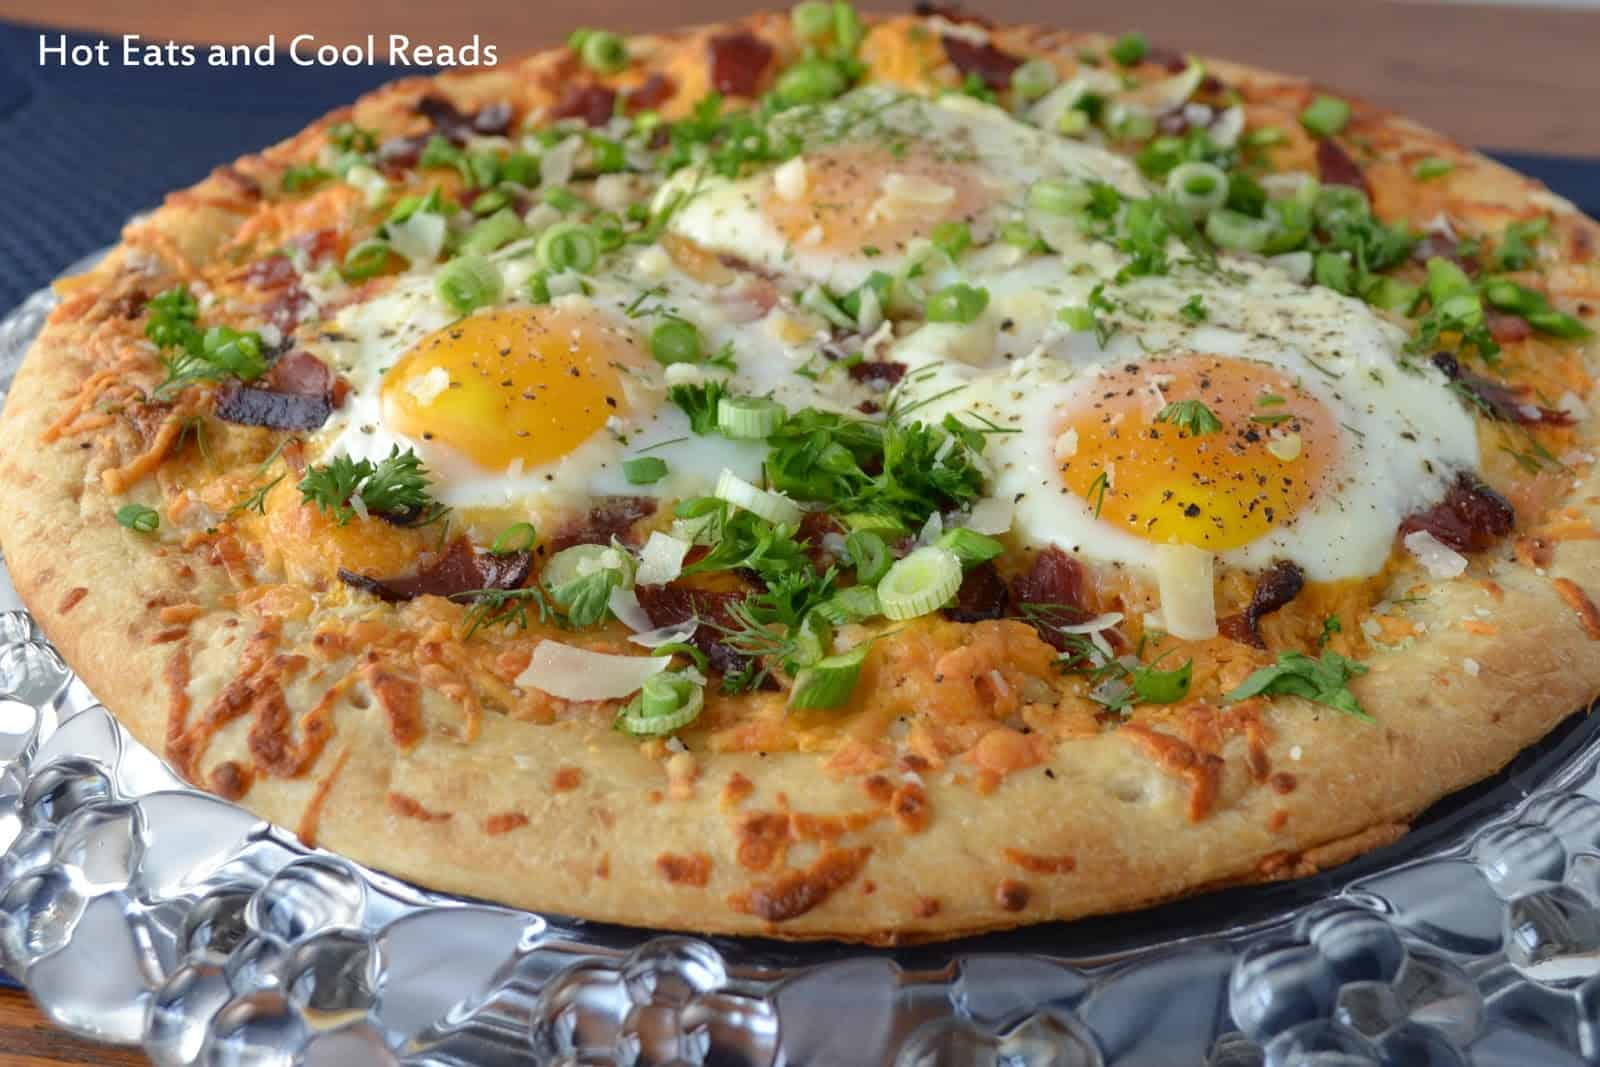 Bacon and asparagus breakfast pizza